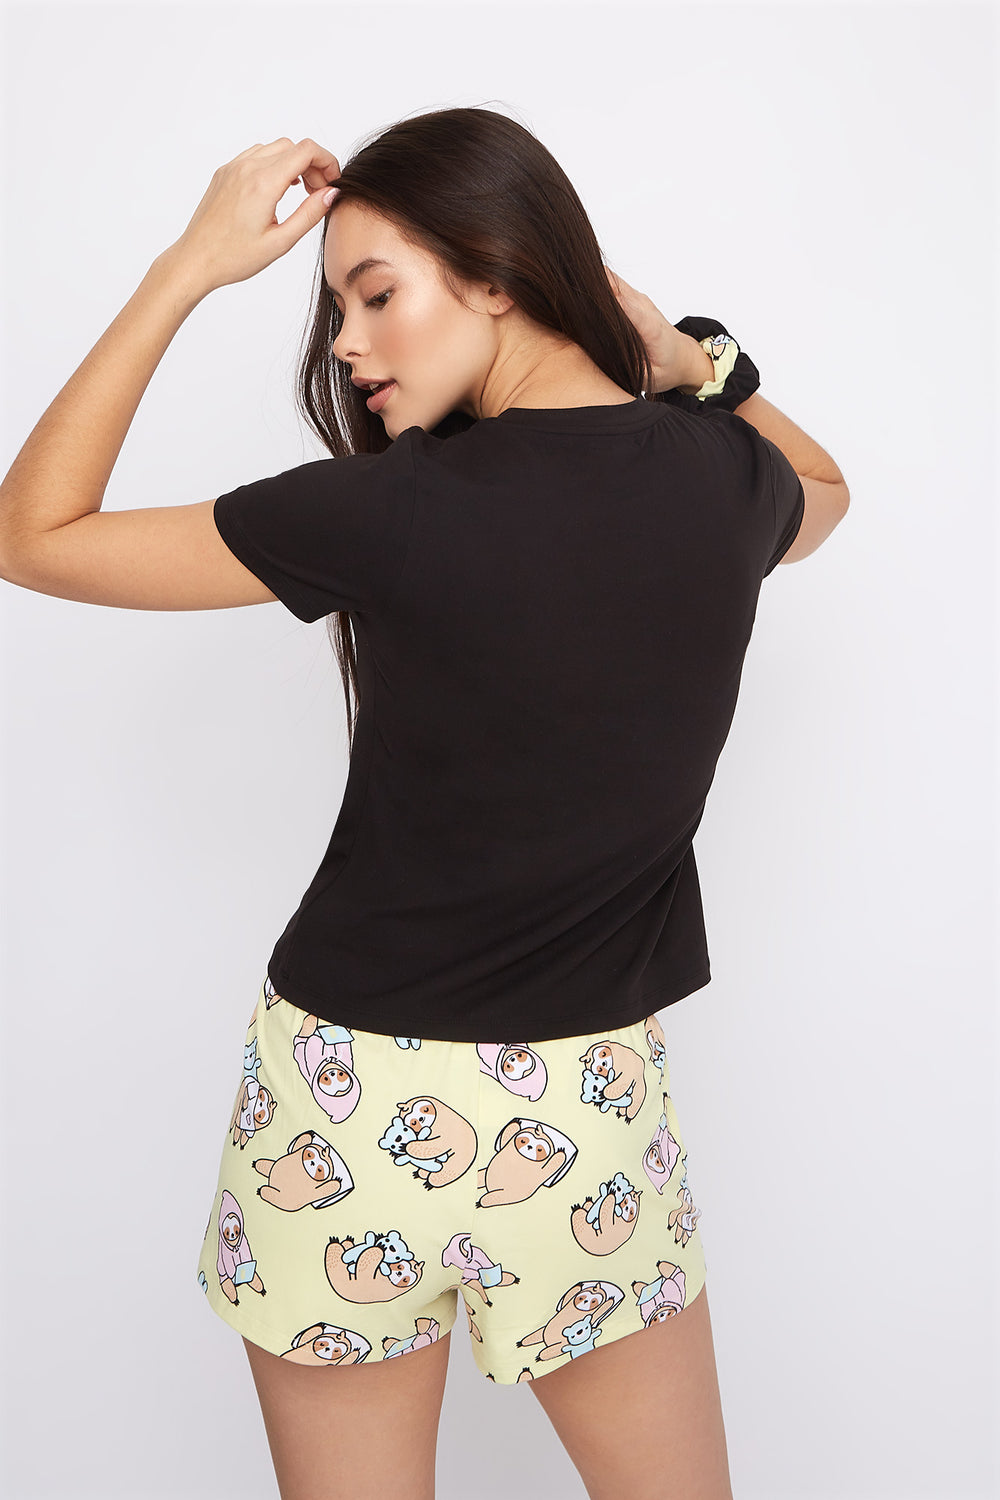 Graphic 3-Piece Pajama T-Shirt And Short Set With Scrunchies Black